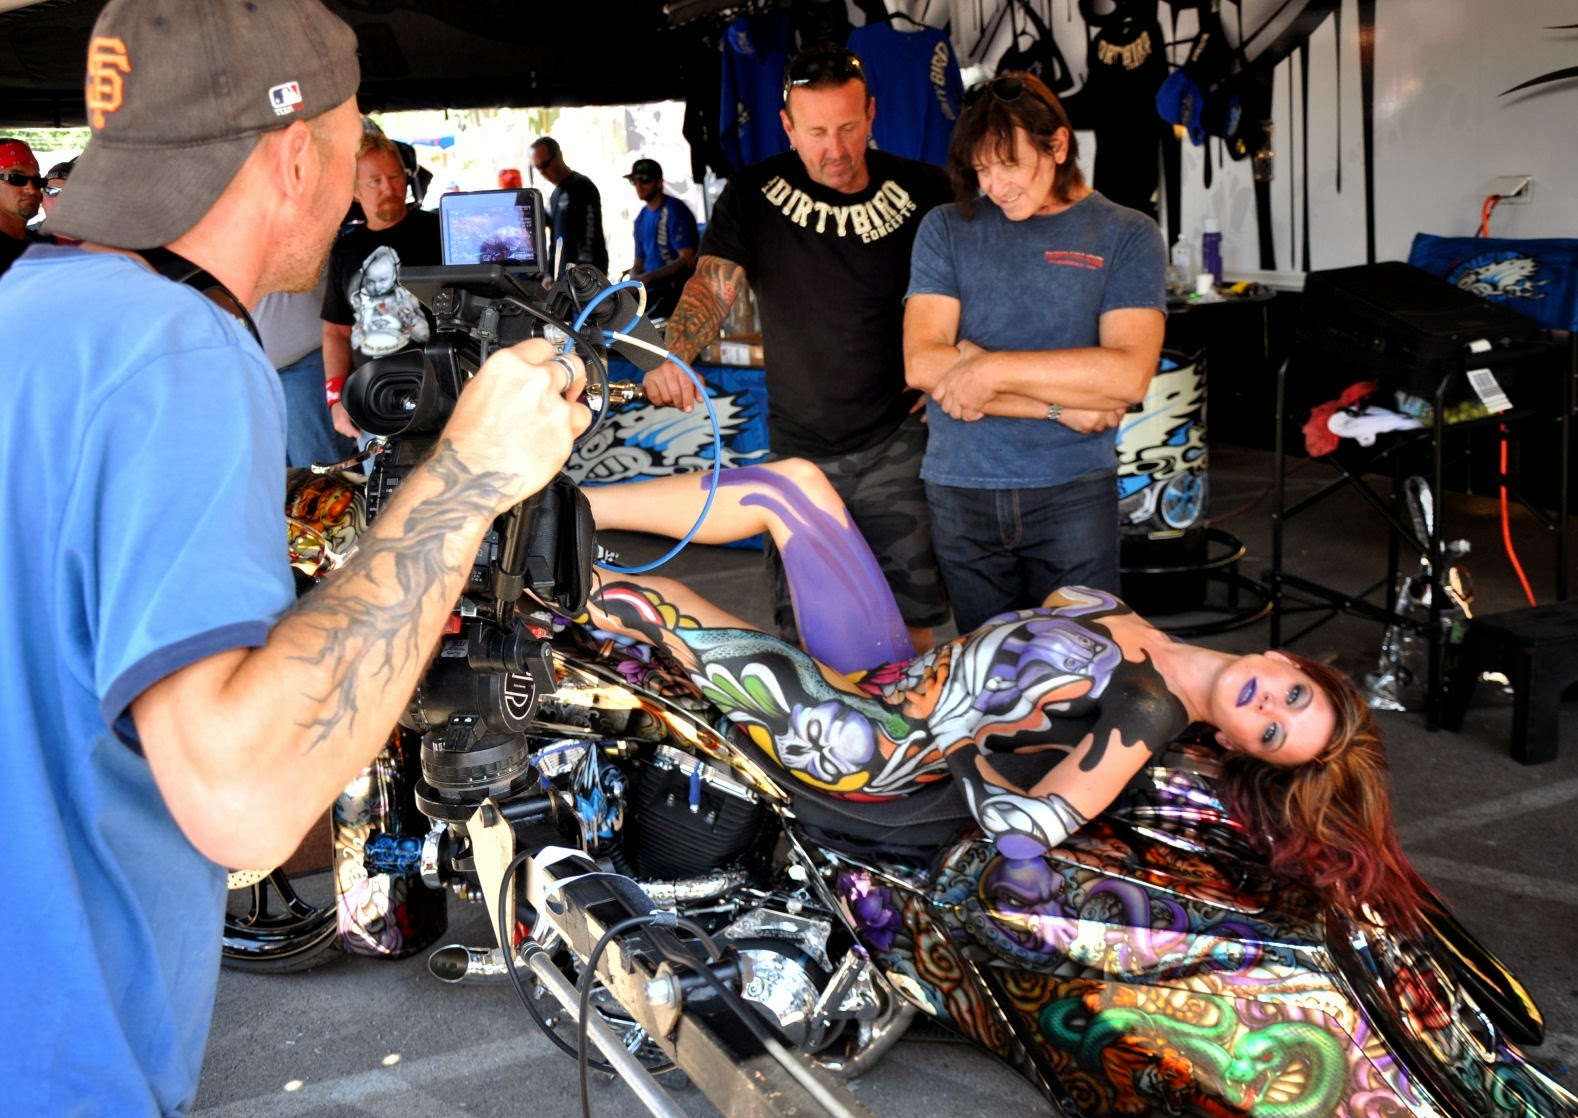 ... Dates future sturgis motorcycle rally dates 75th annual 2015 dates